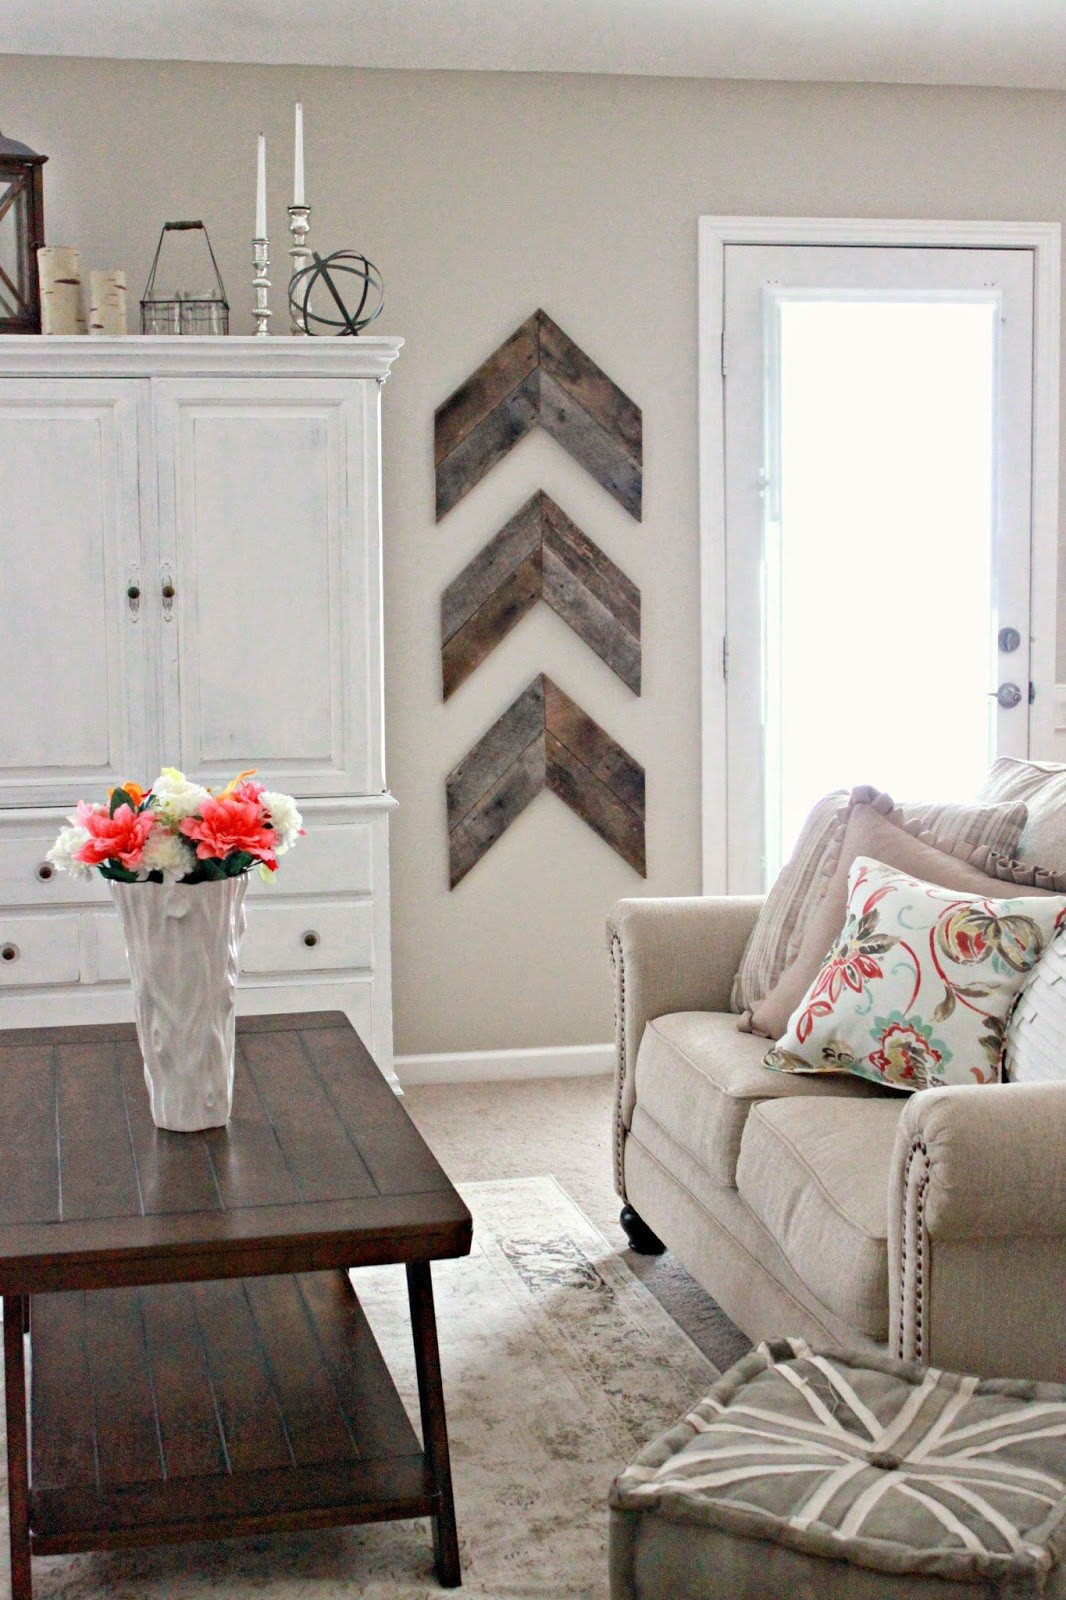 Rustic Living Room Wall Decor Luxury 27 Best Rustic Wall Decor Ideas and Designs for 2019